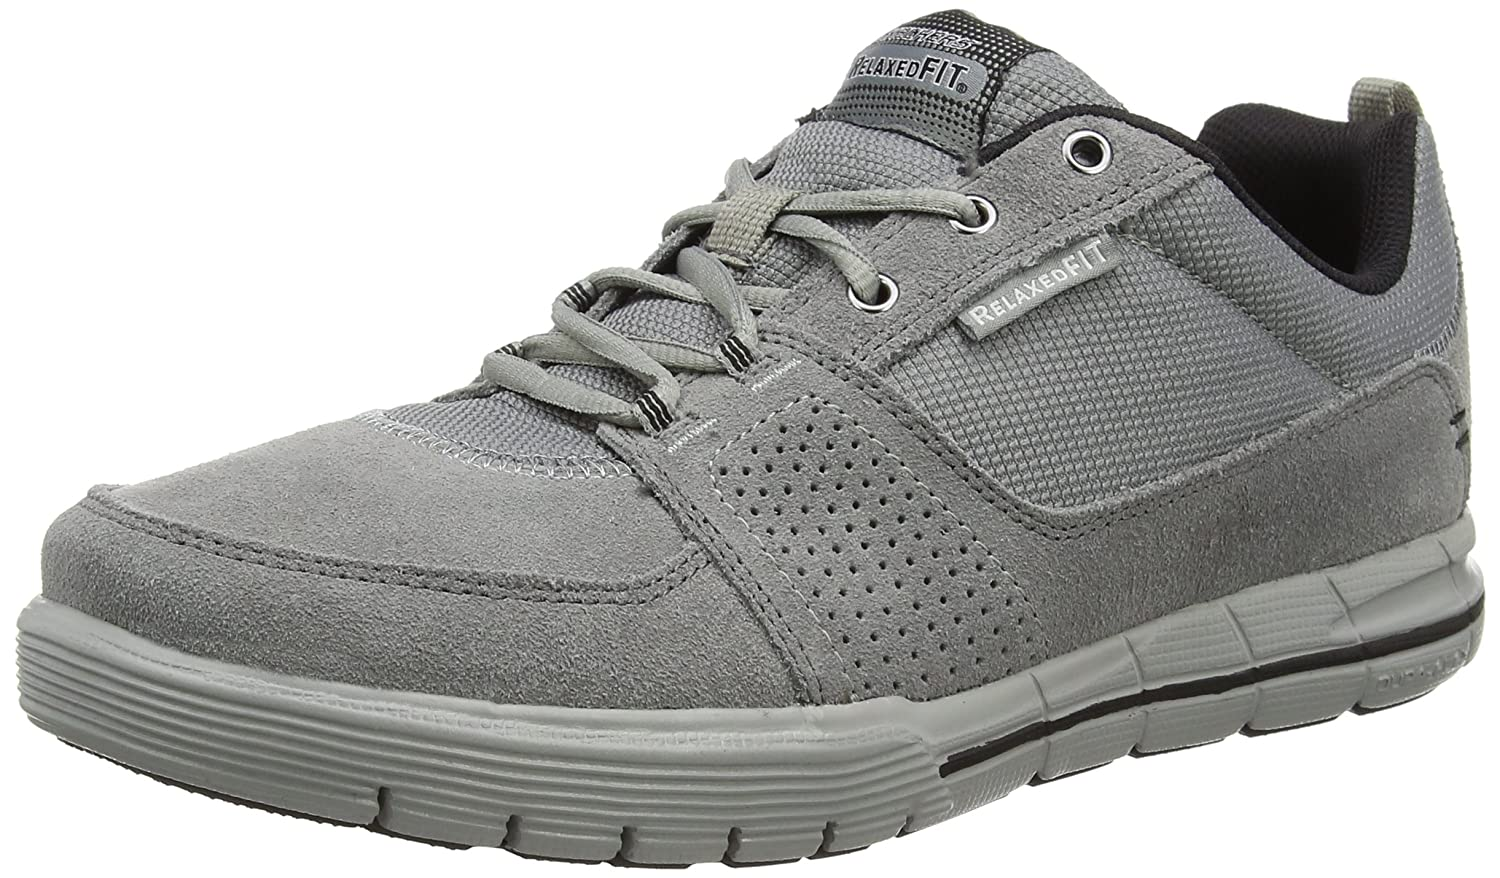 Skechers Mens Arcade II Next Move Shoes Charcoal Black Size